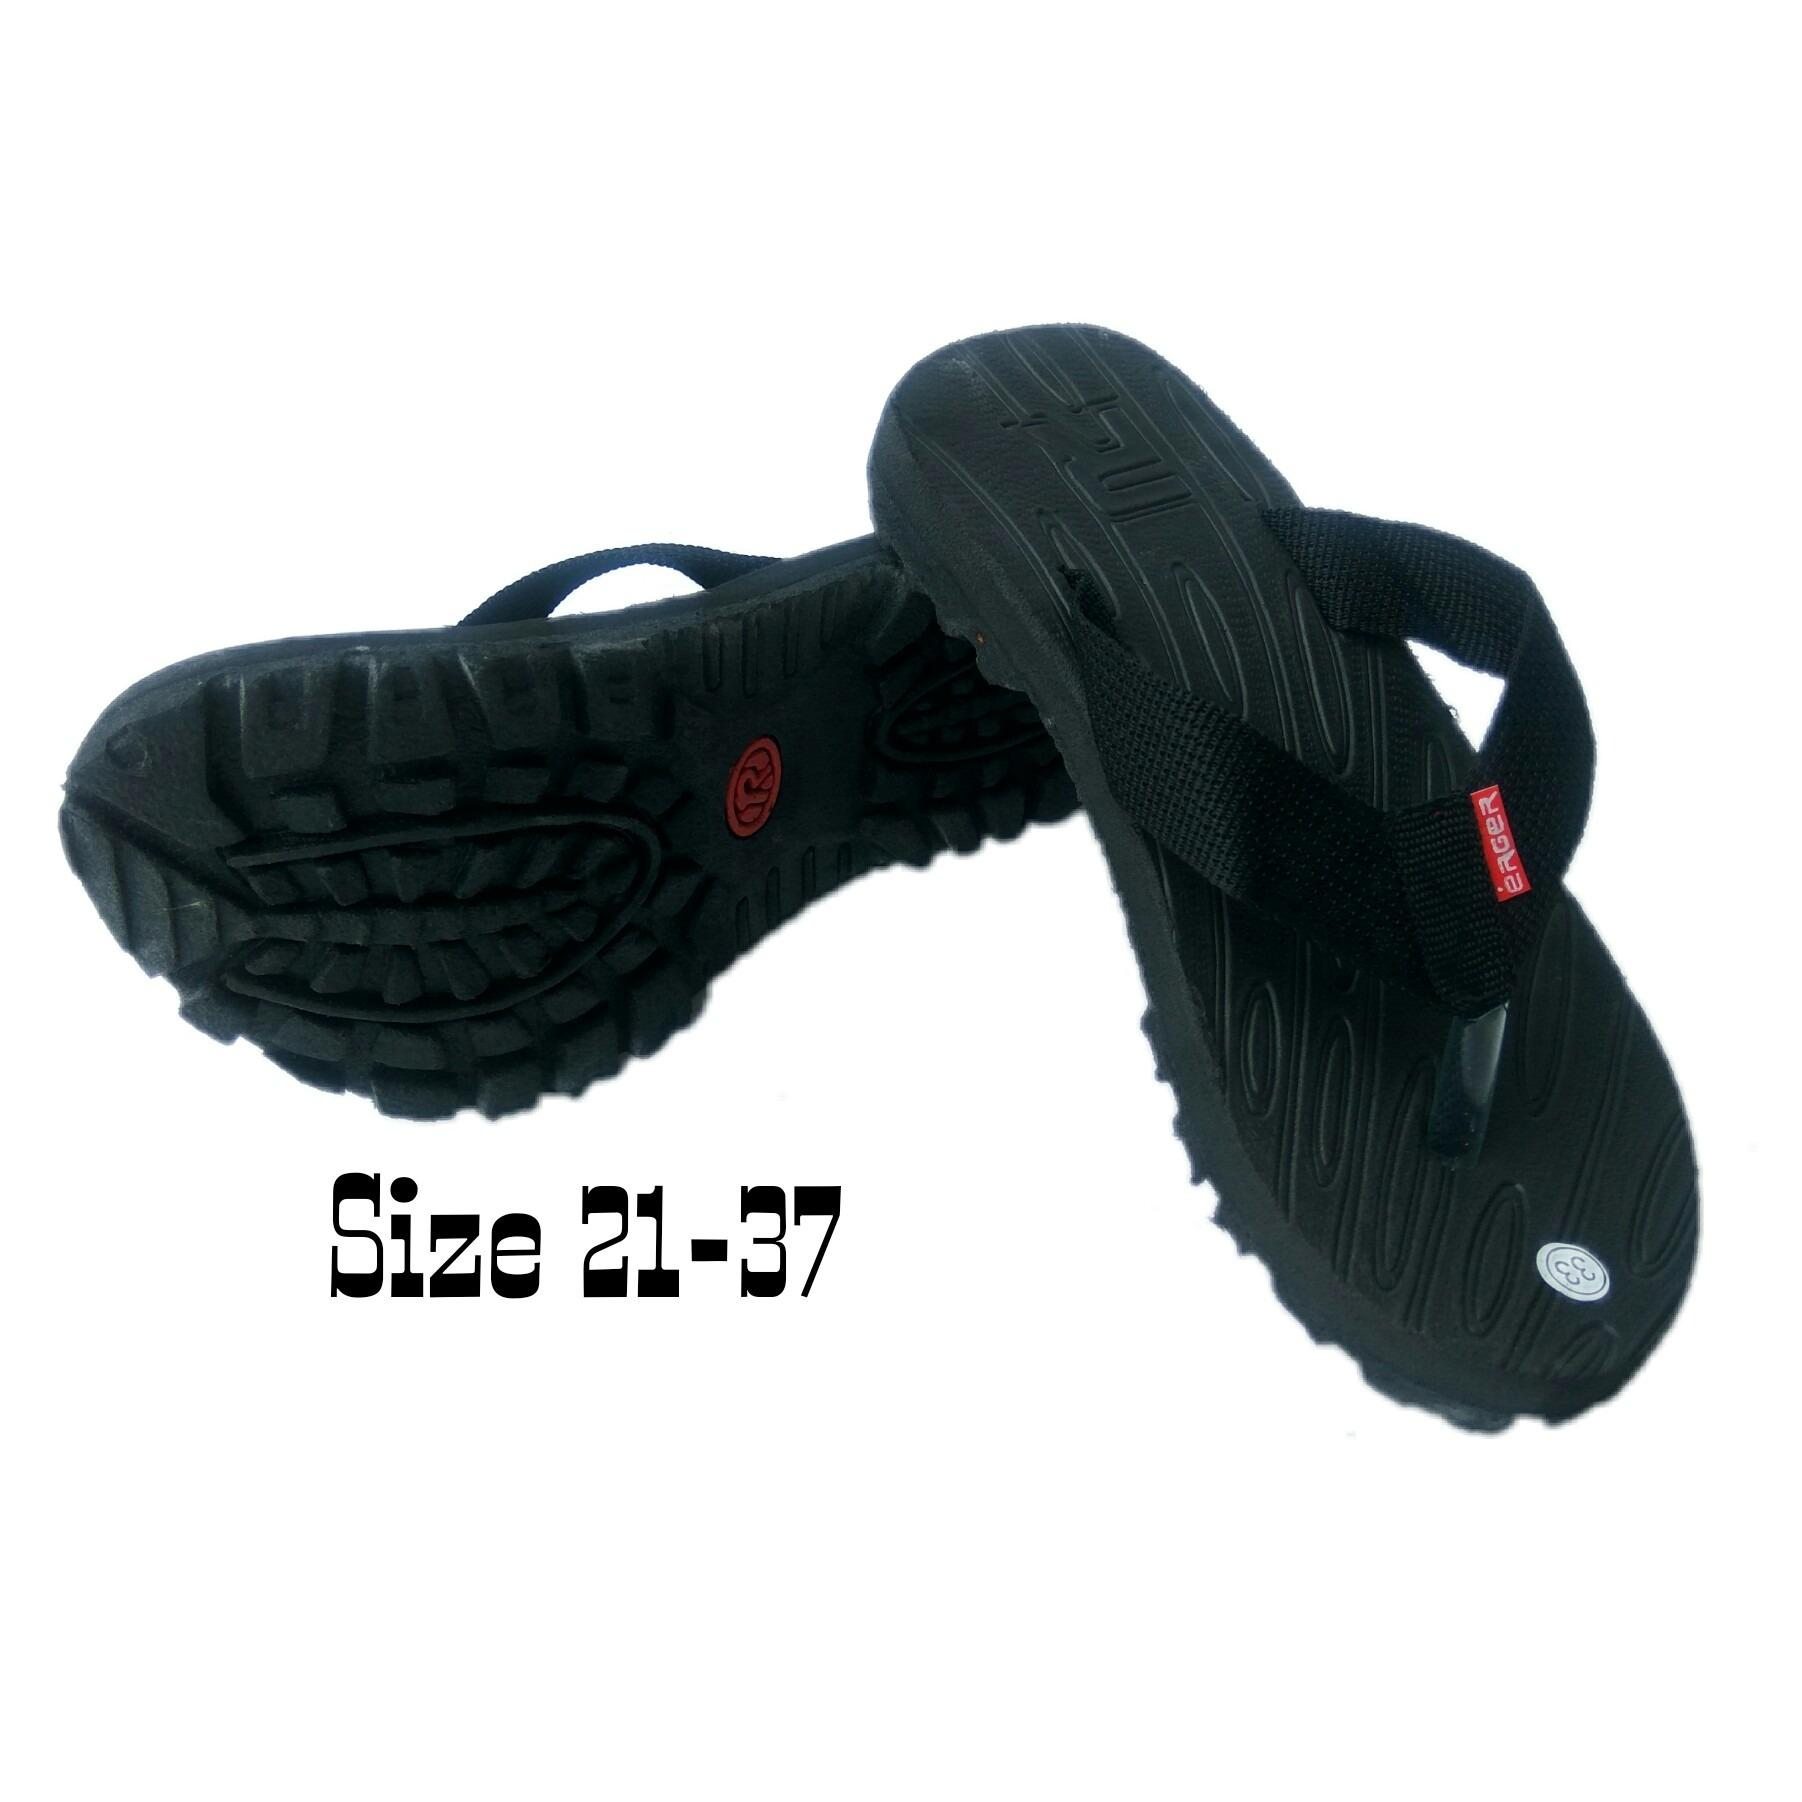 Arsy Collections Sandal Gunung Jepit Baby/Balita/Anak - Hitam